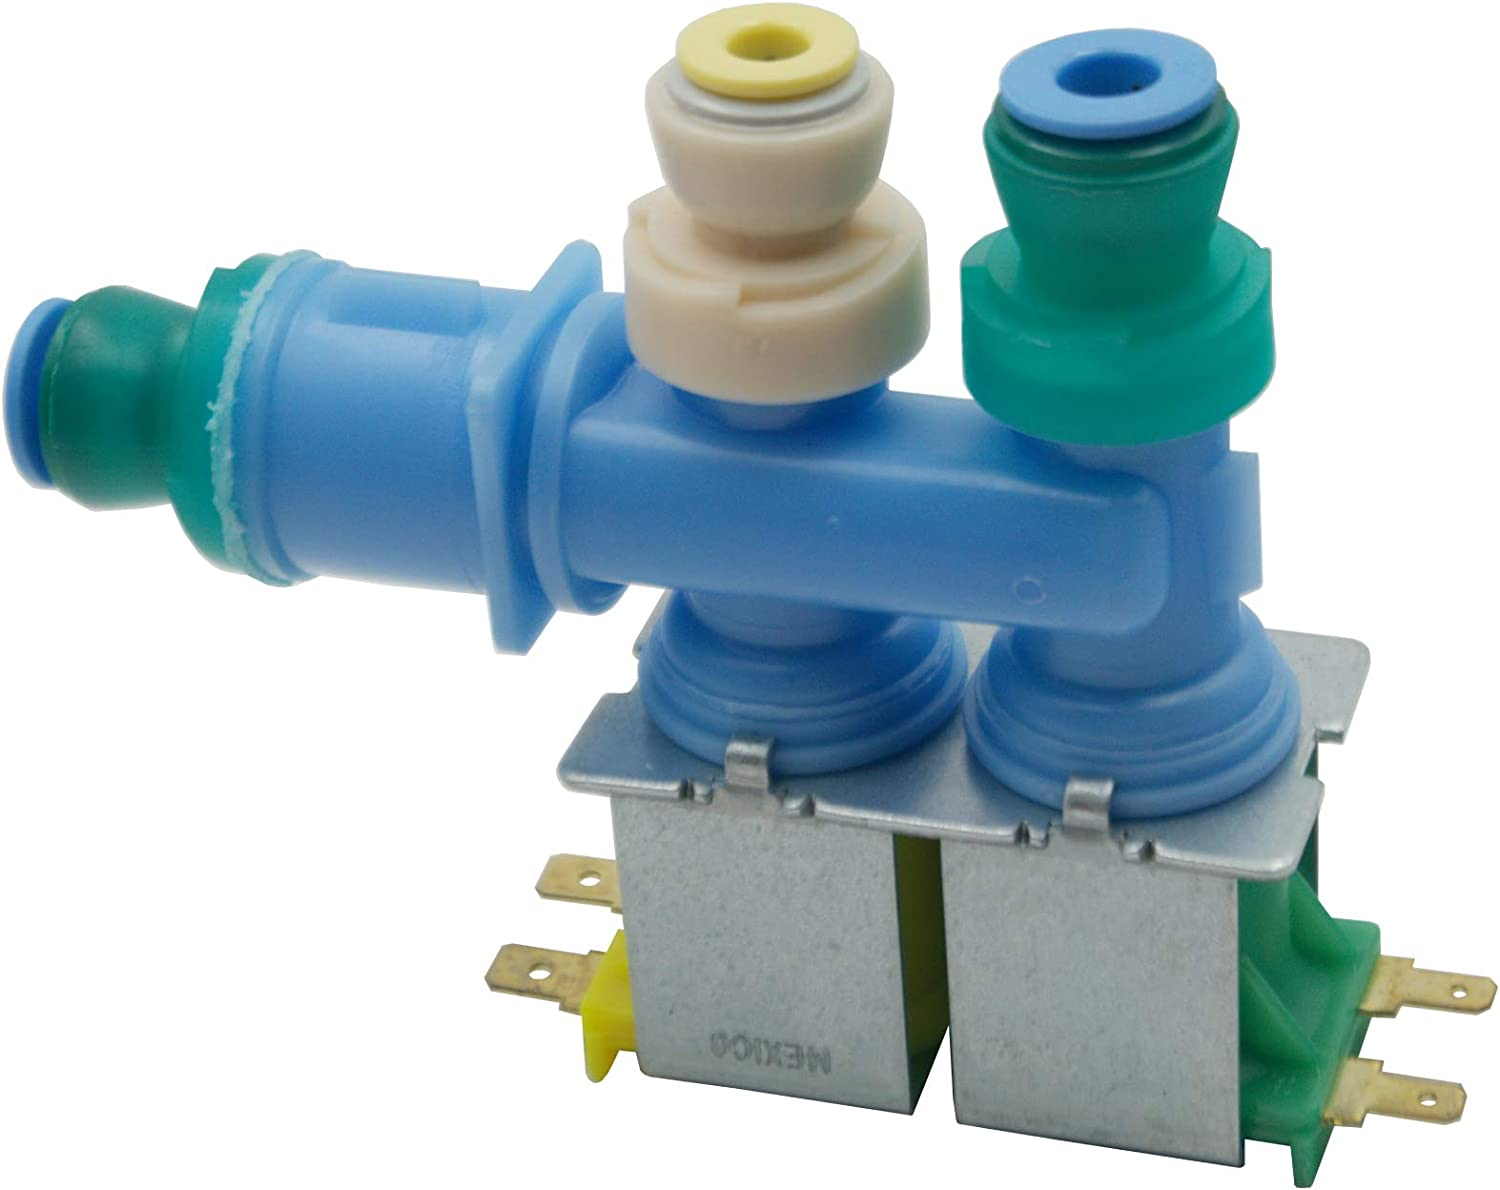 Supplying Demand W11043013 Refrigerator Water Inlet Valve Replaces W10913947, AP6041509